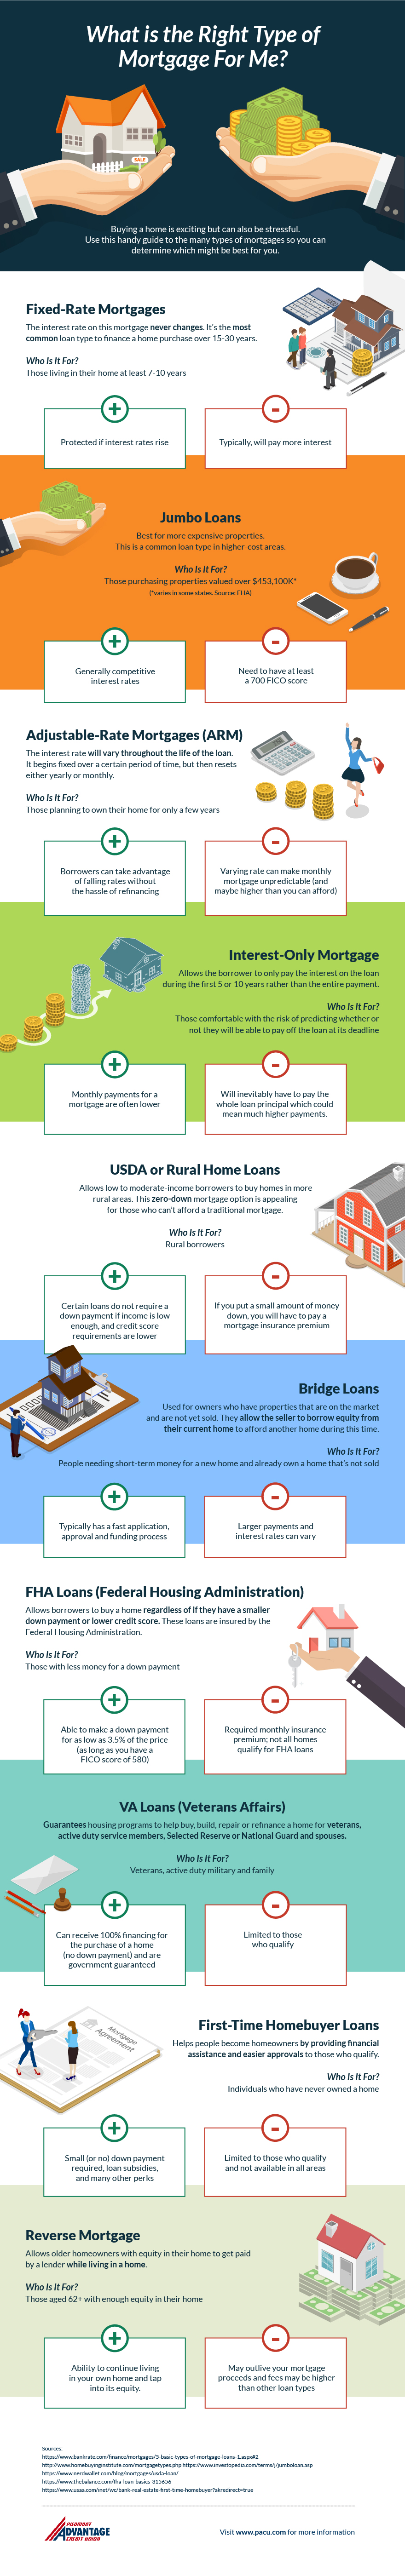 Infographic explaining different mortgage types